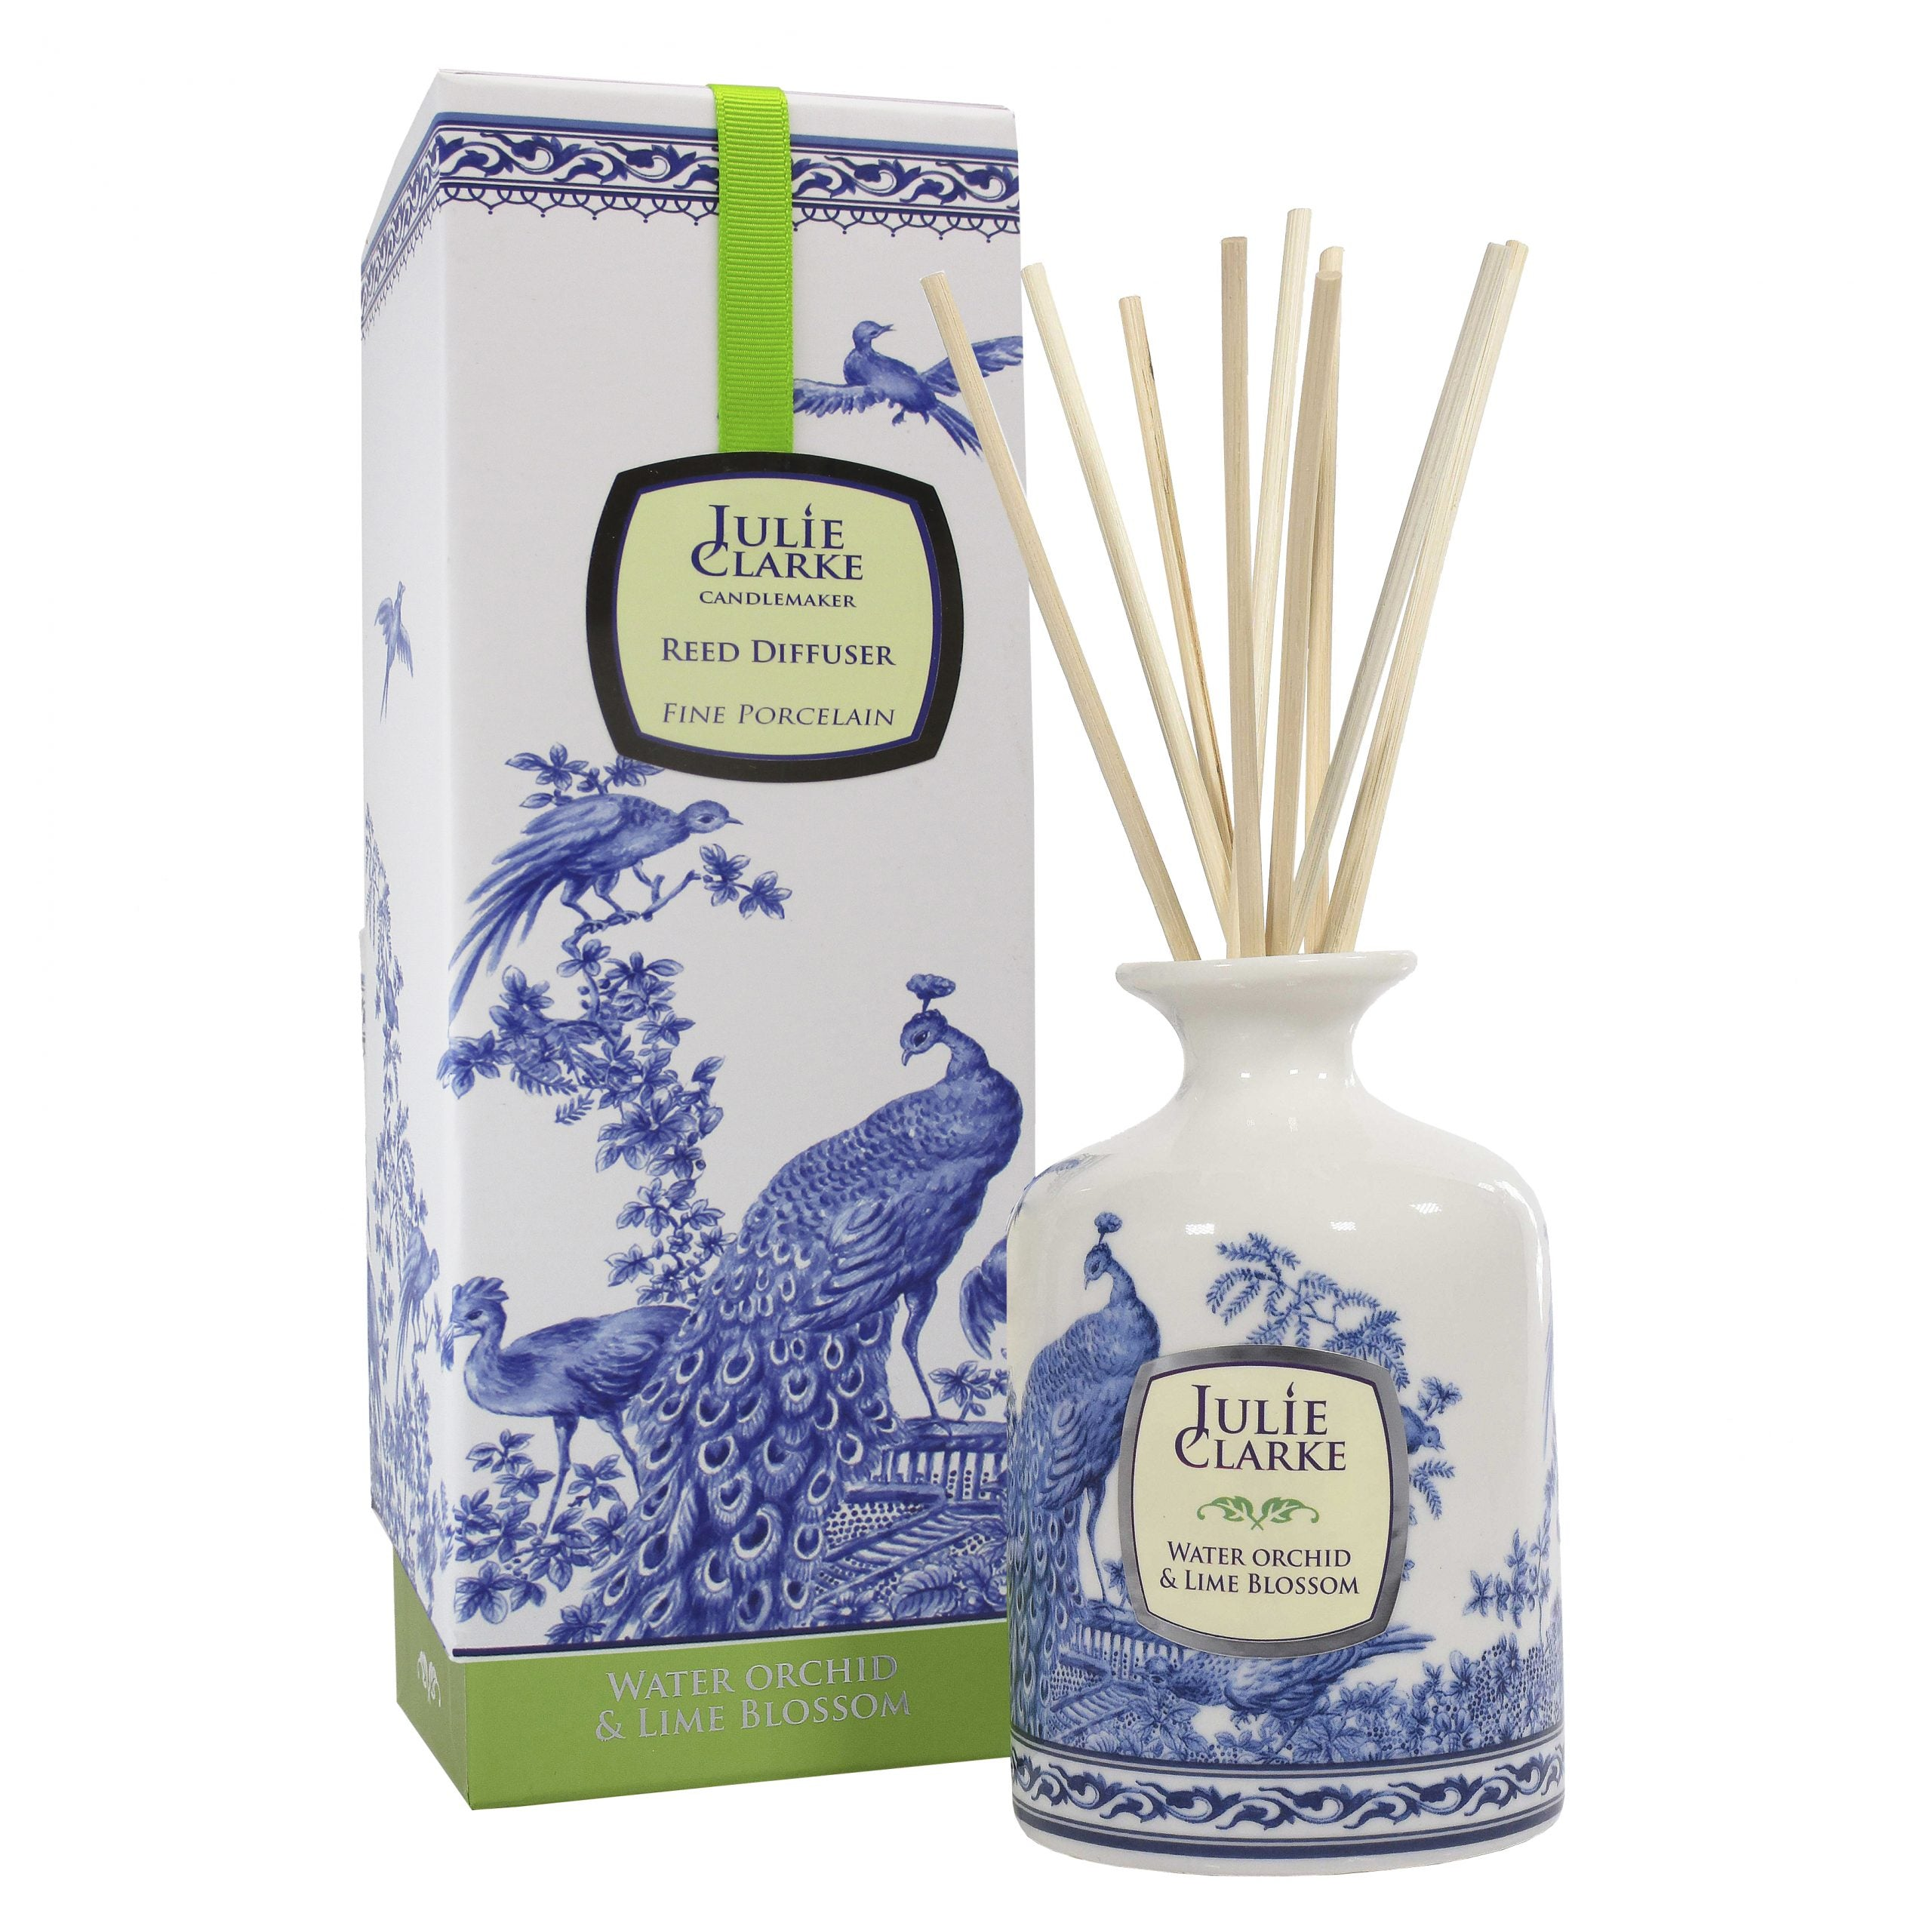 Water Orchid & Lime Blossom - Diffuser